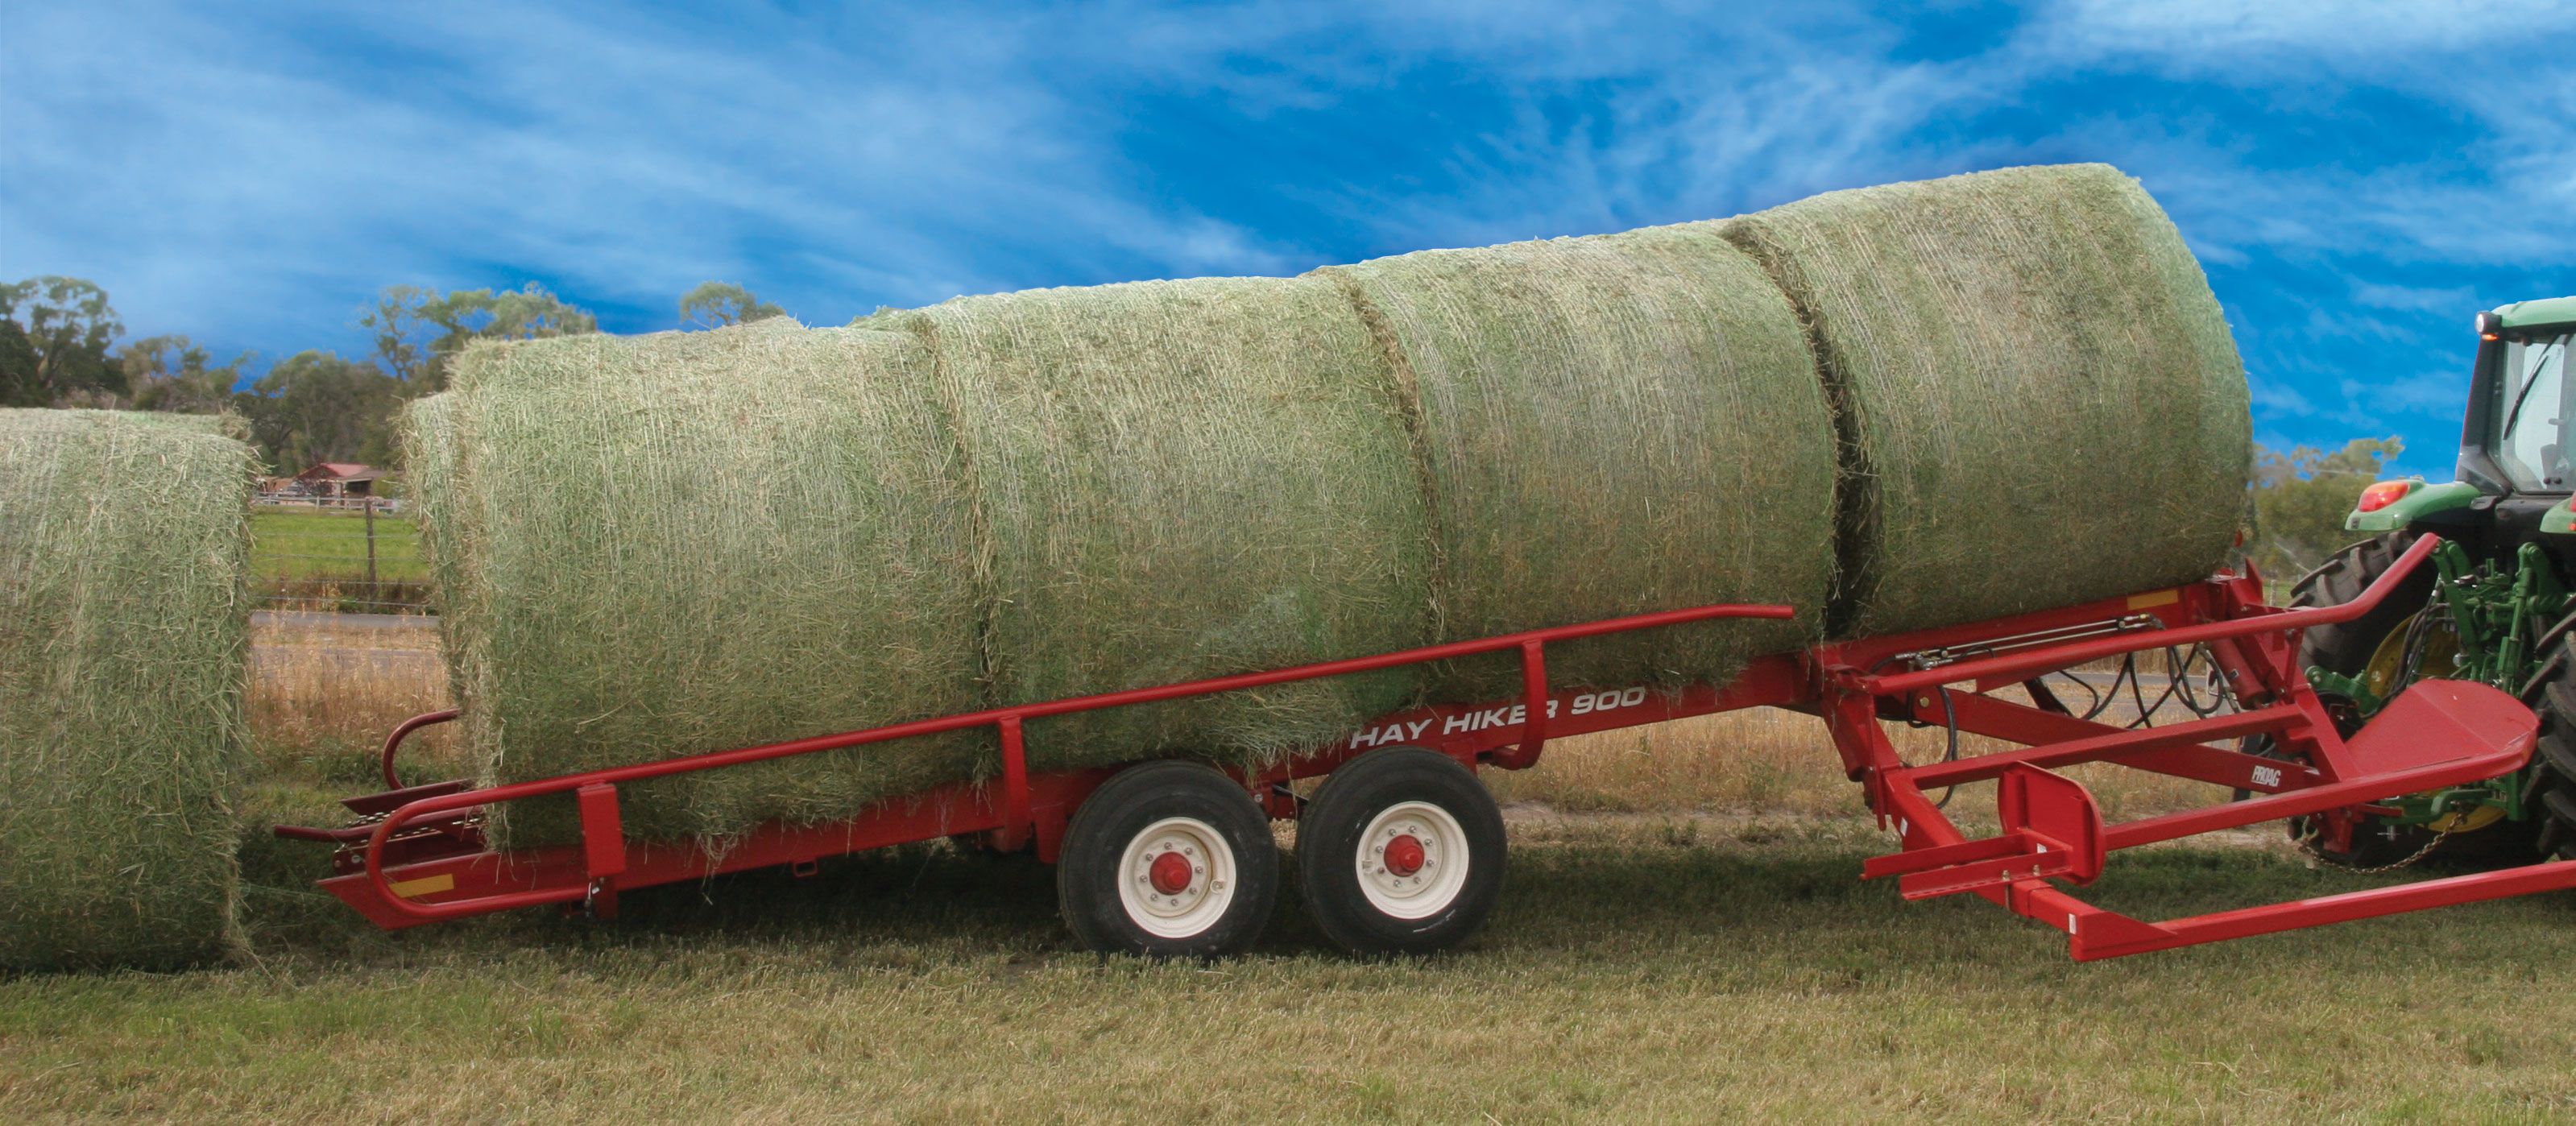 2018 ProAG Hay Hiker 900 Bale Wagons and Trailer